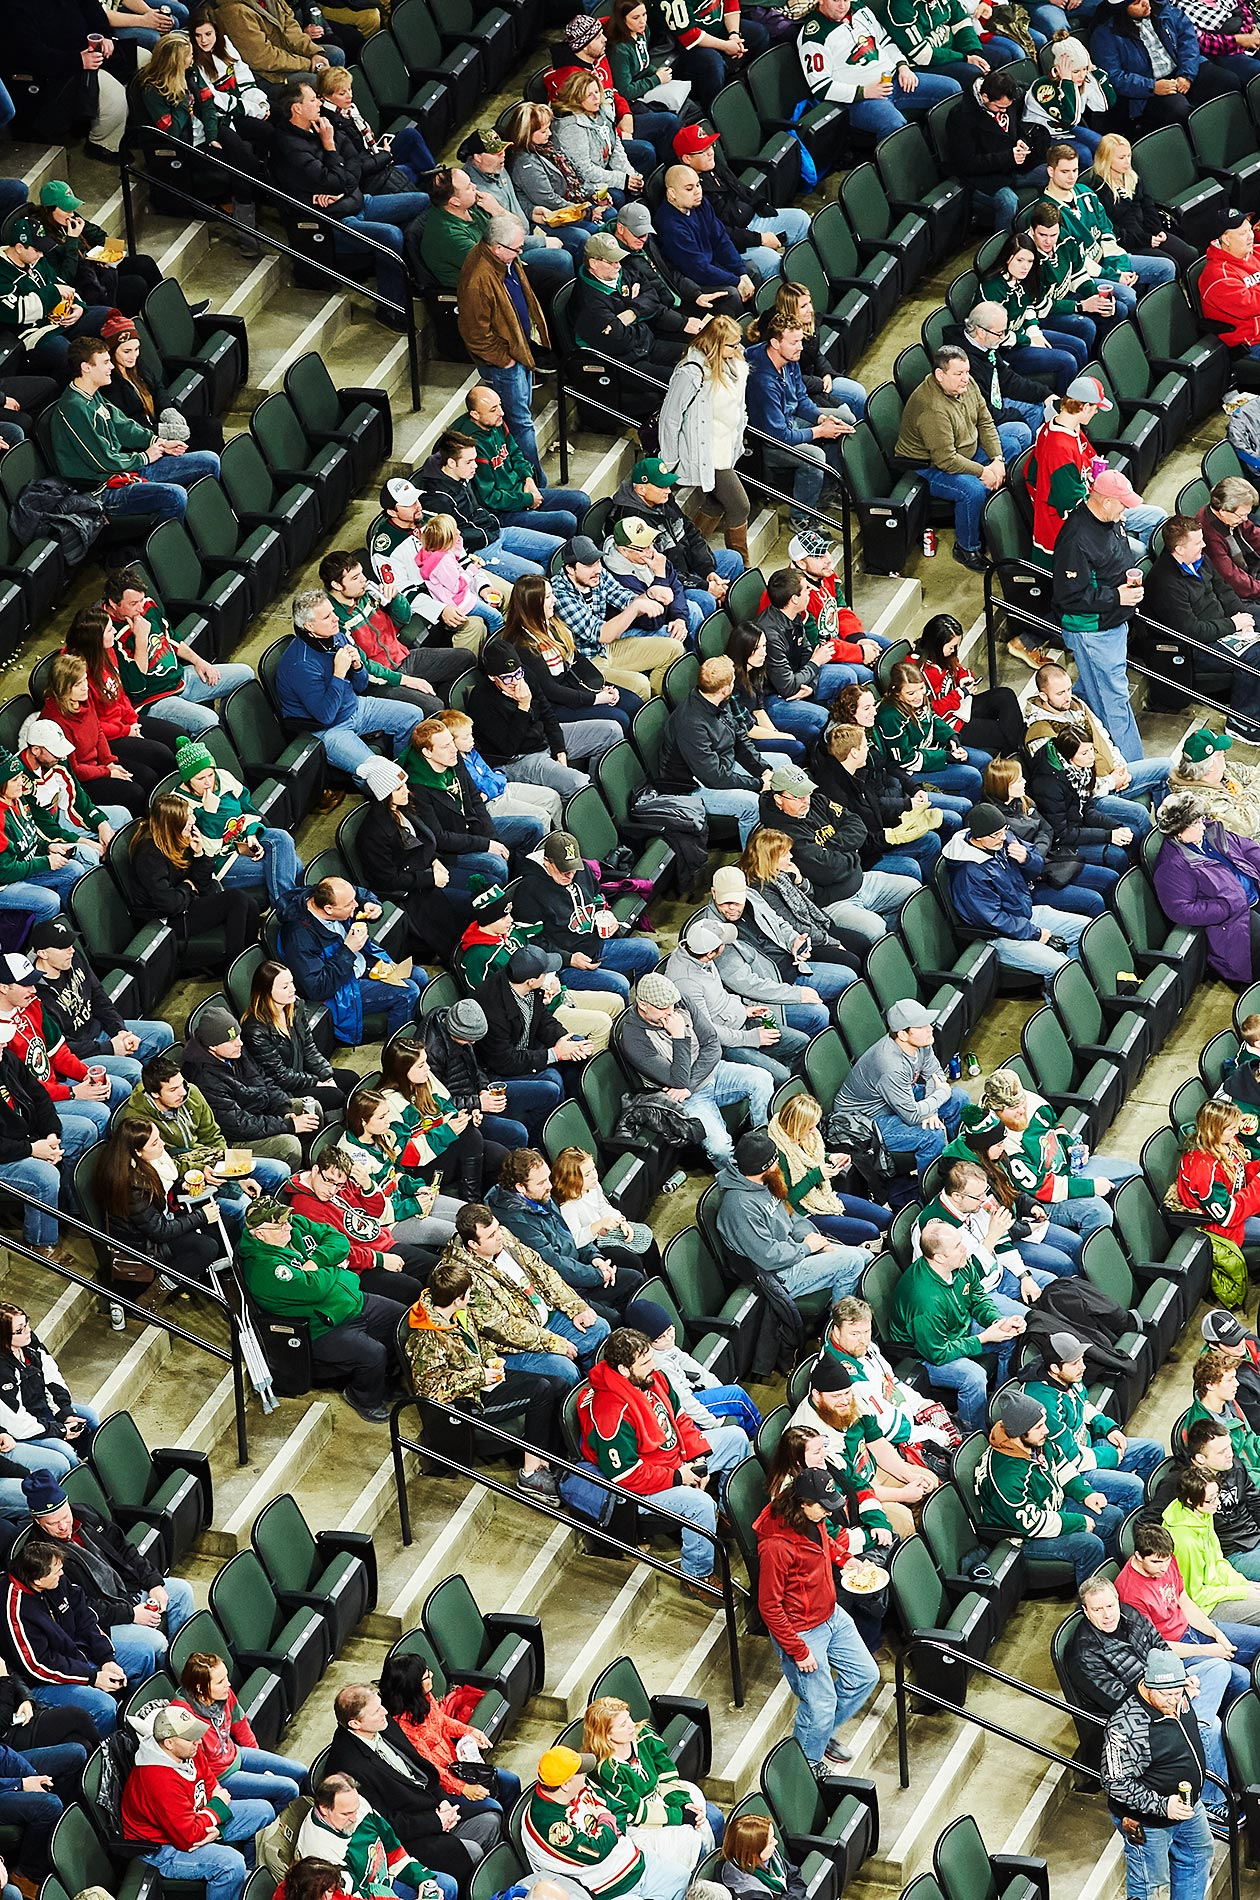 Xcel Center crowd - Steve Craft Photography - Phoenix Arizona Commercial Photographer